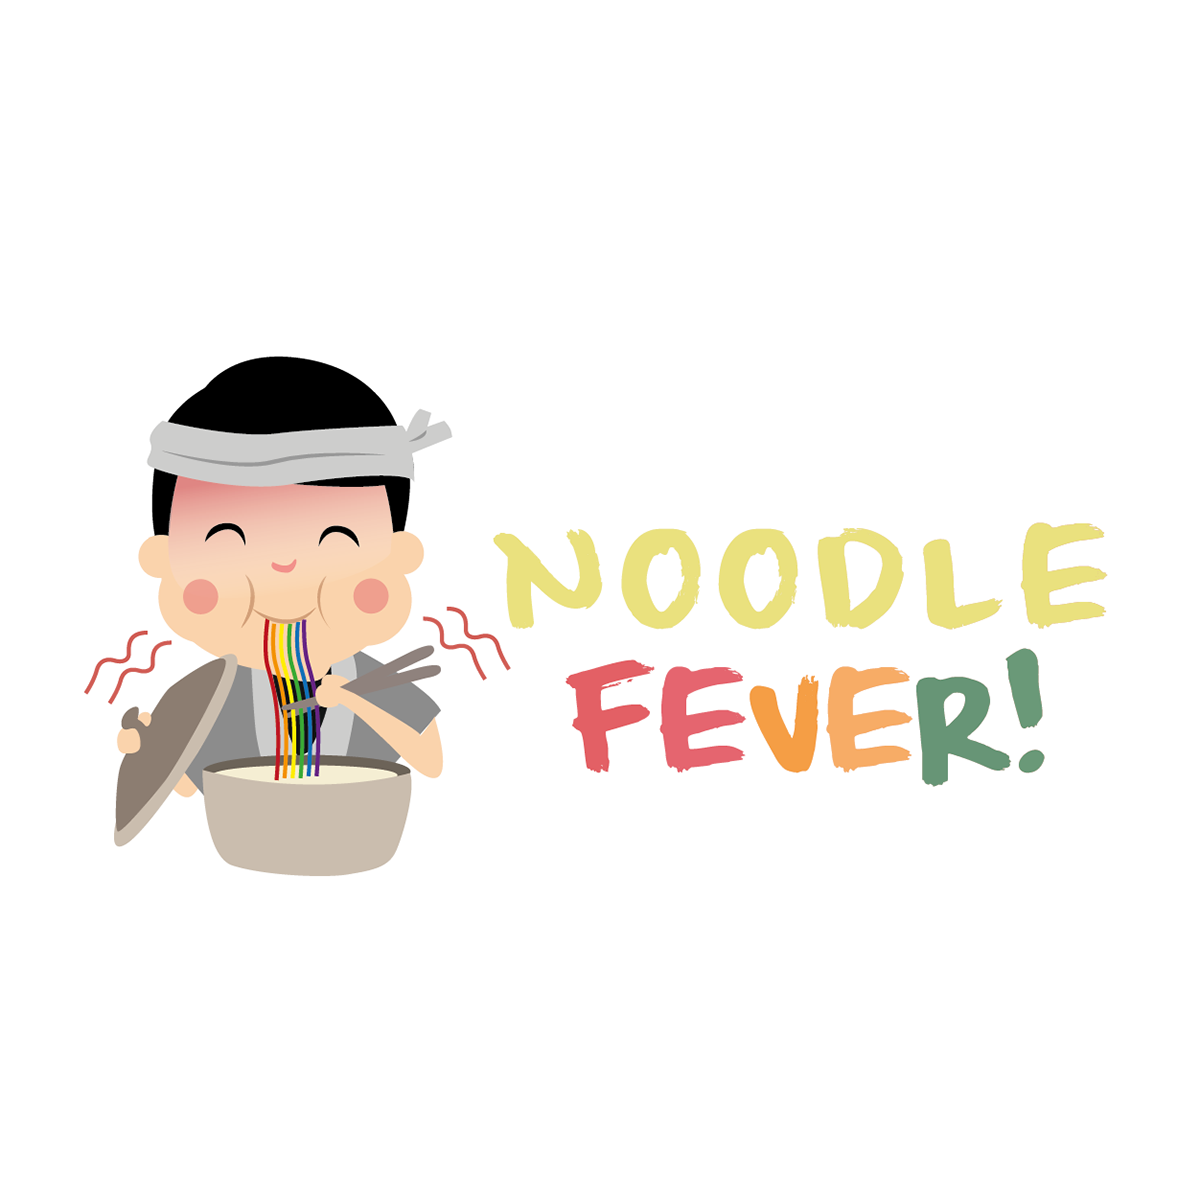 Noodle fever branding on. Noodles clipart european food